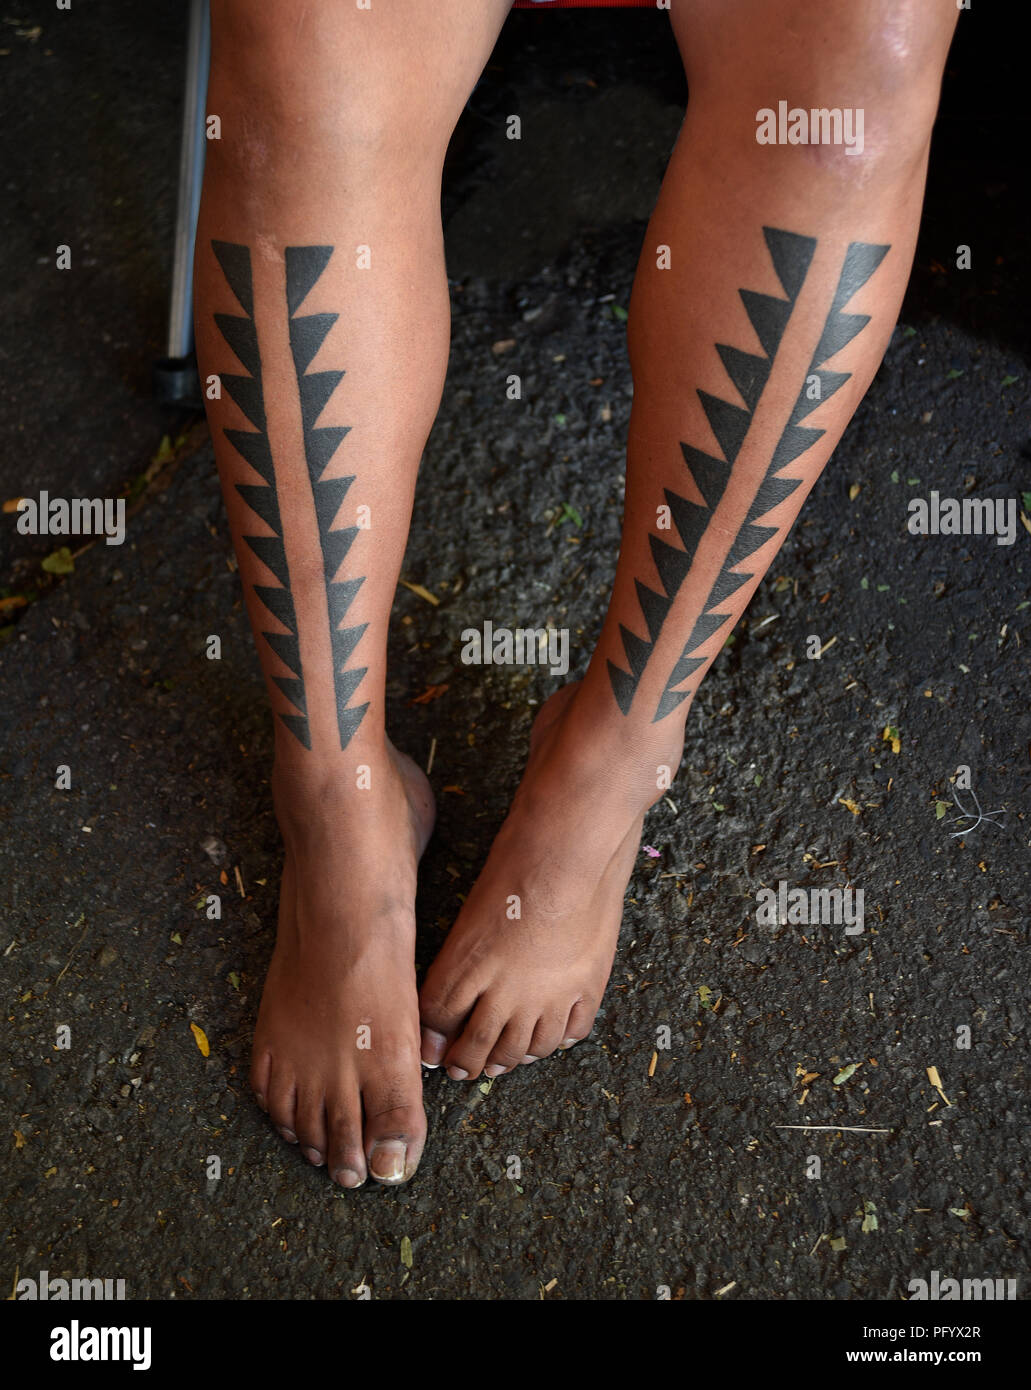 Native American Design Tattoos On The Legs Of A Native American